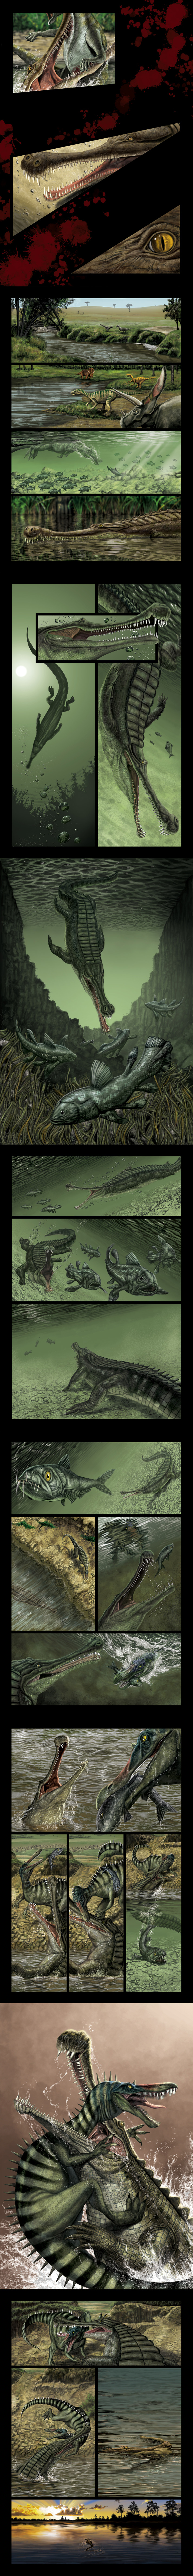 Discovery Channel's Dinosaurs by caiocacau